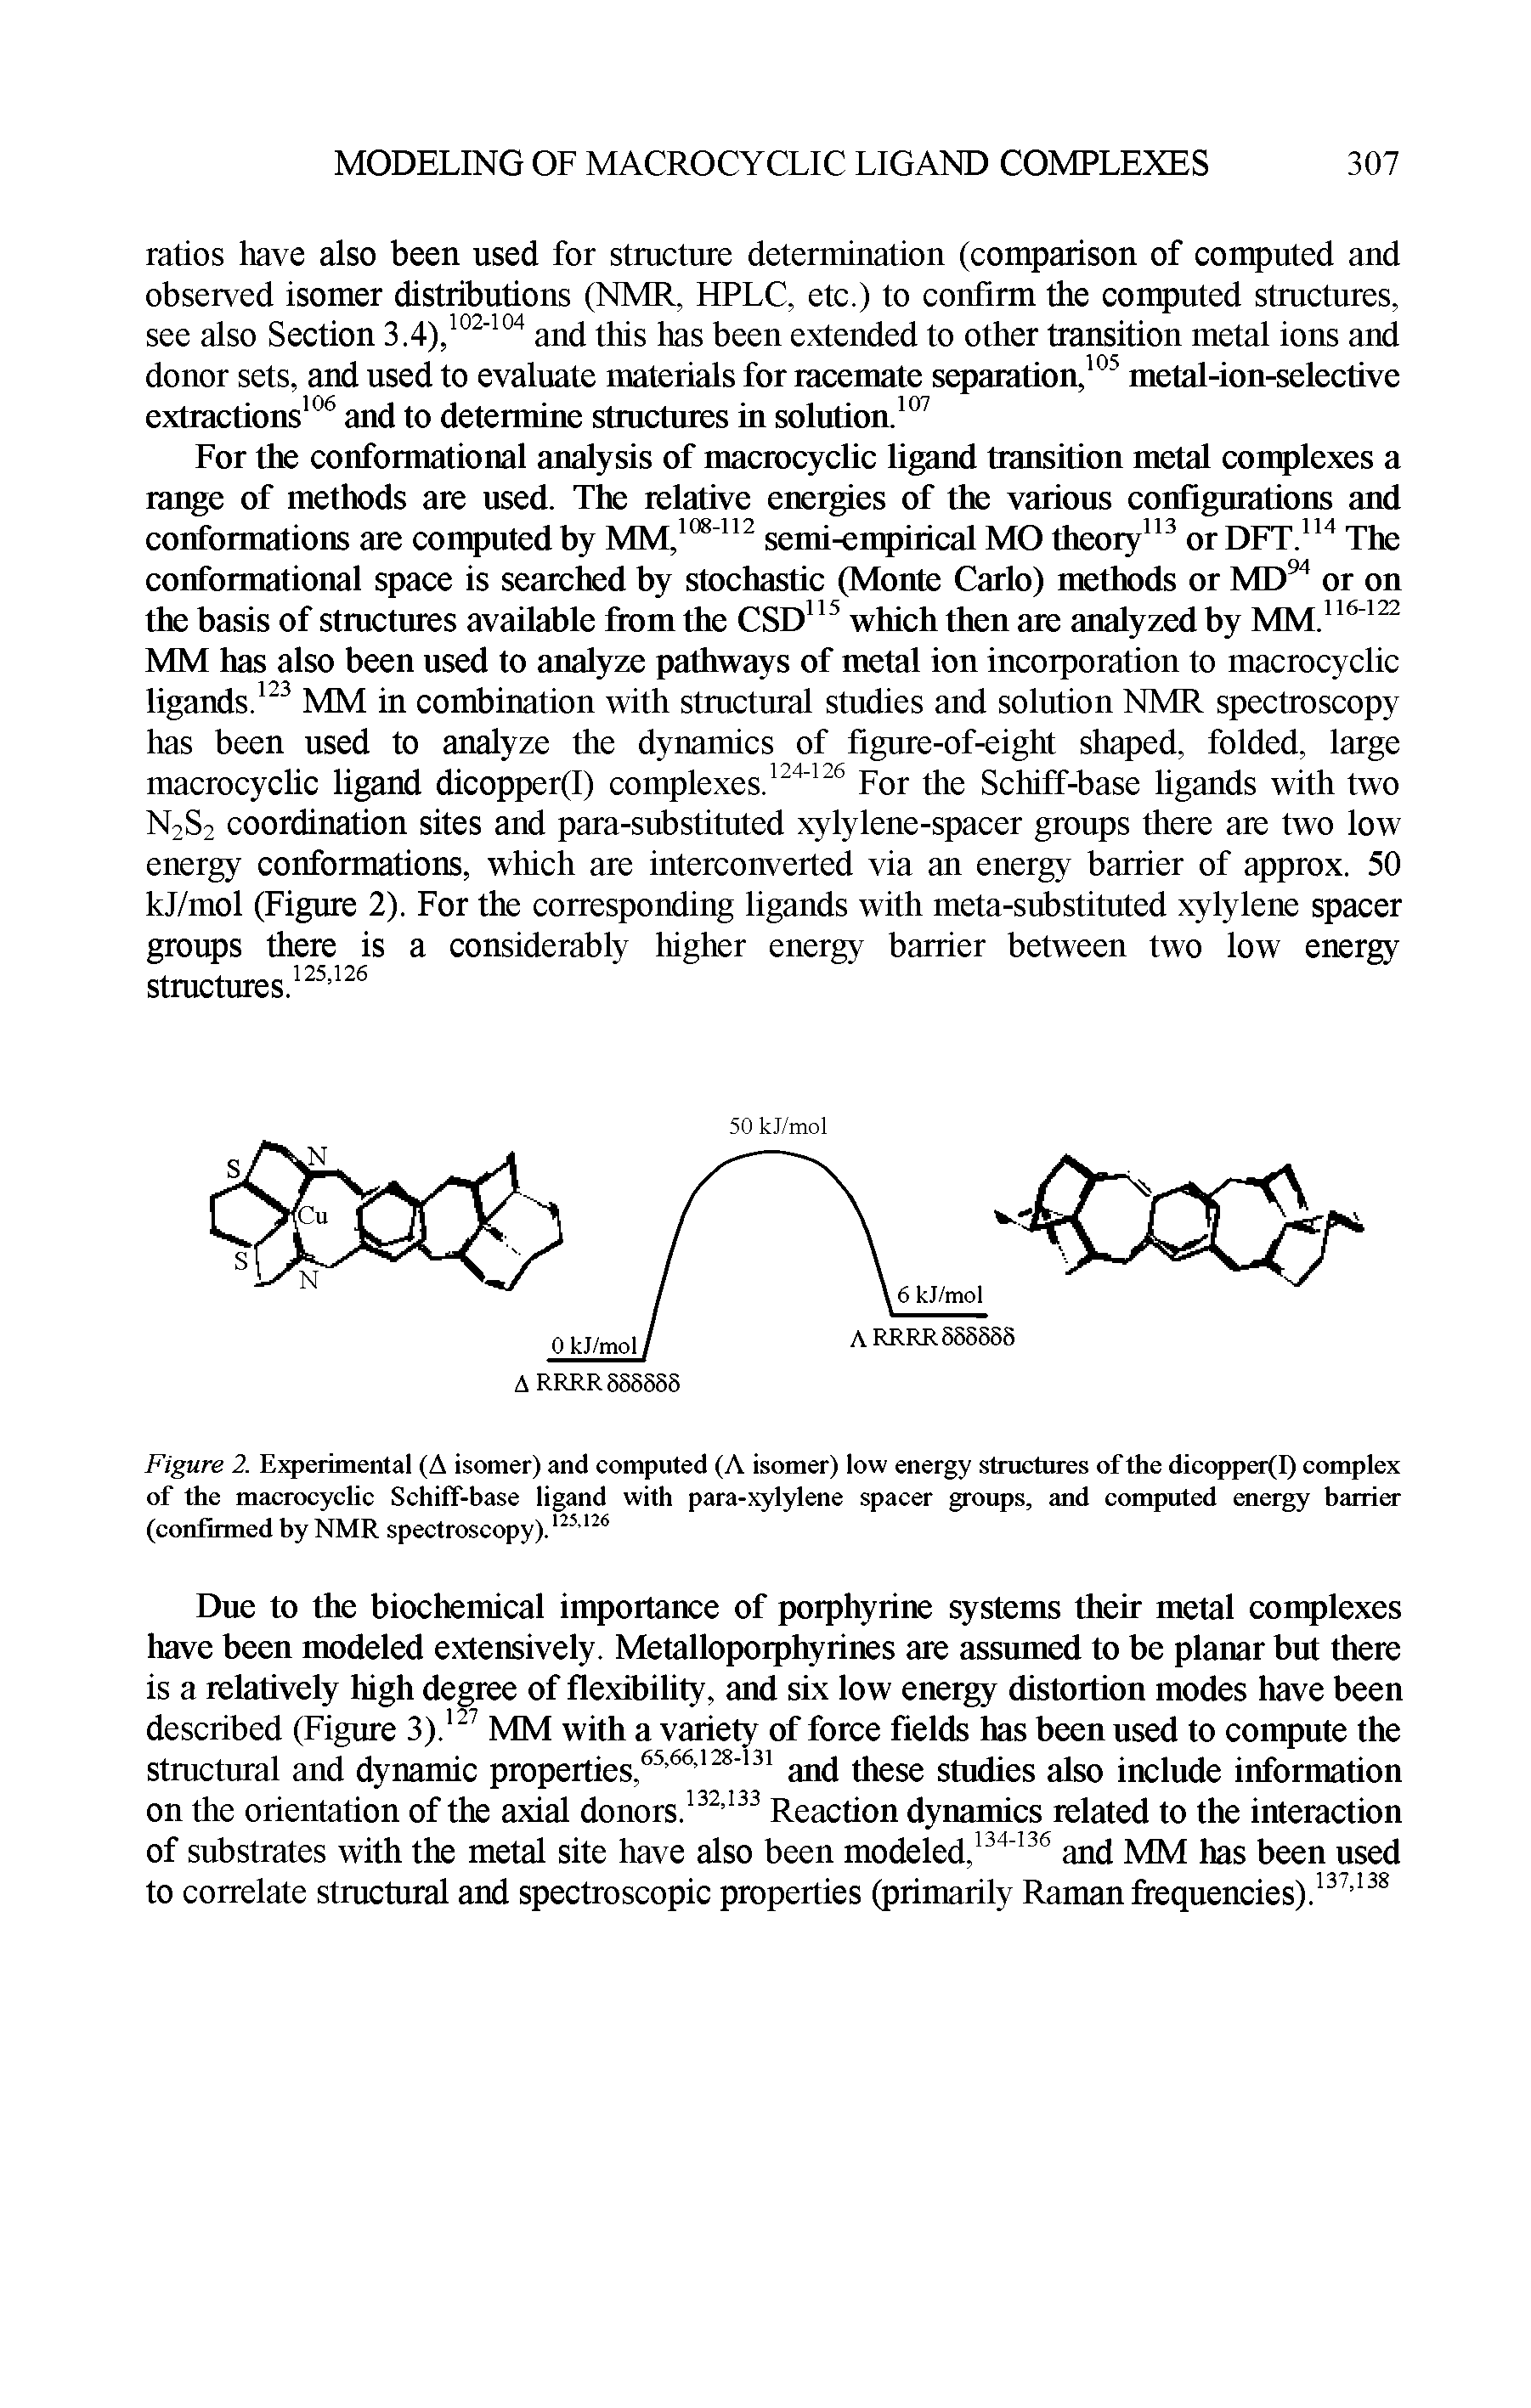 Figure 2. Experimental (A isomer) and computed (A isomer) low energy structures of the dicopper(I) complex of the macrocyclic Schiff-base ligand with para-xylylene spacer groups, and computed energy barrier (confirmed by NMR spectroscopy).125126...